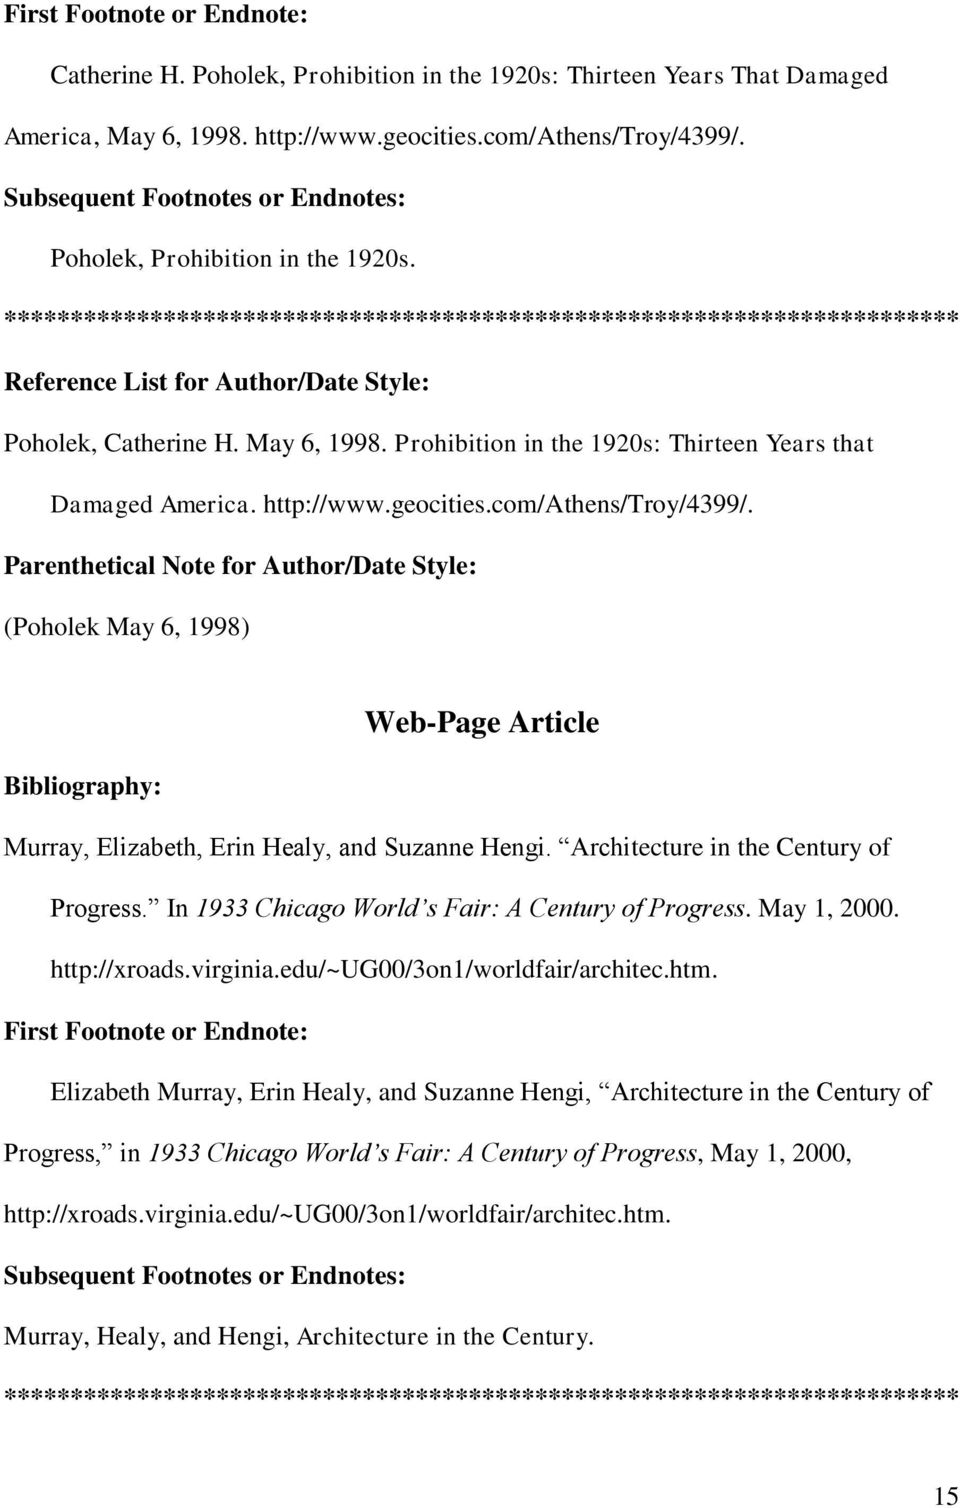 (Poholek May 6, 1998) Web-Page Article Murray, Elizabeth, Erin Healy, and Suzanne Hengi. Architecture in the Century of Progress. In 1933 Chicago World s Fair: A Century of Progress. May 1, 2000.